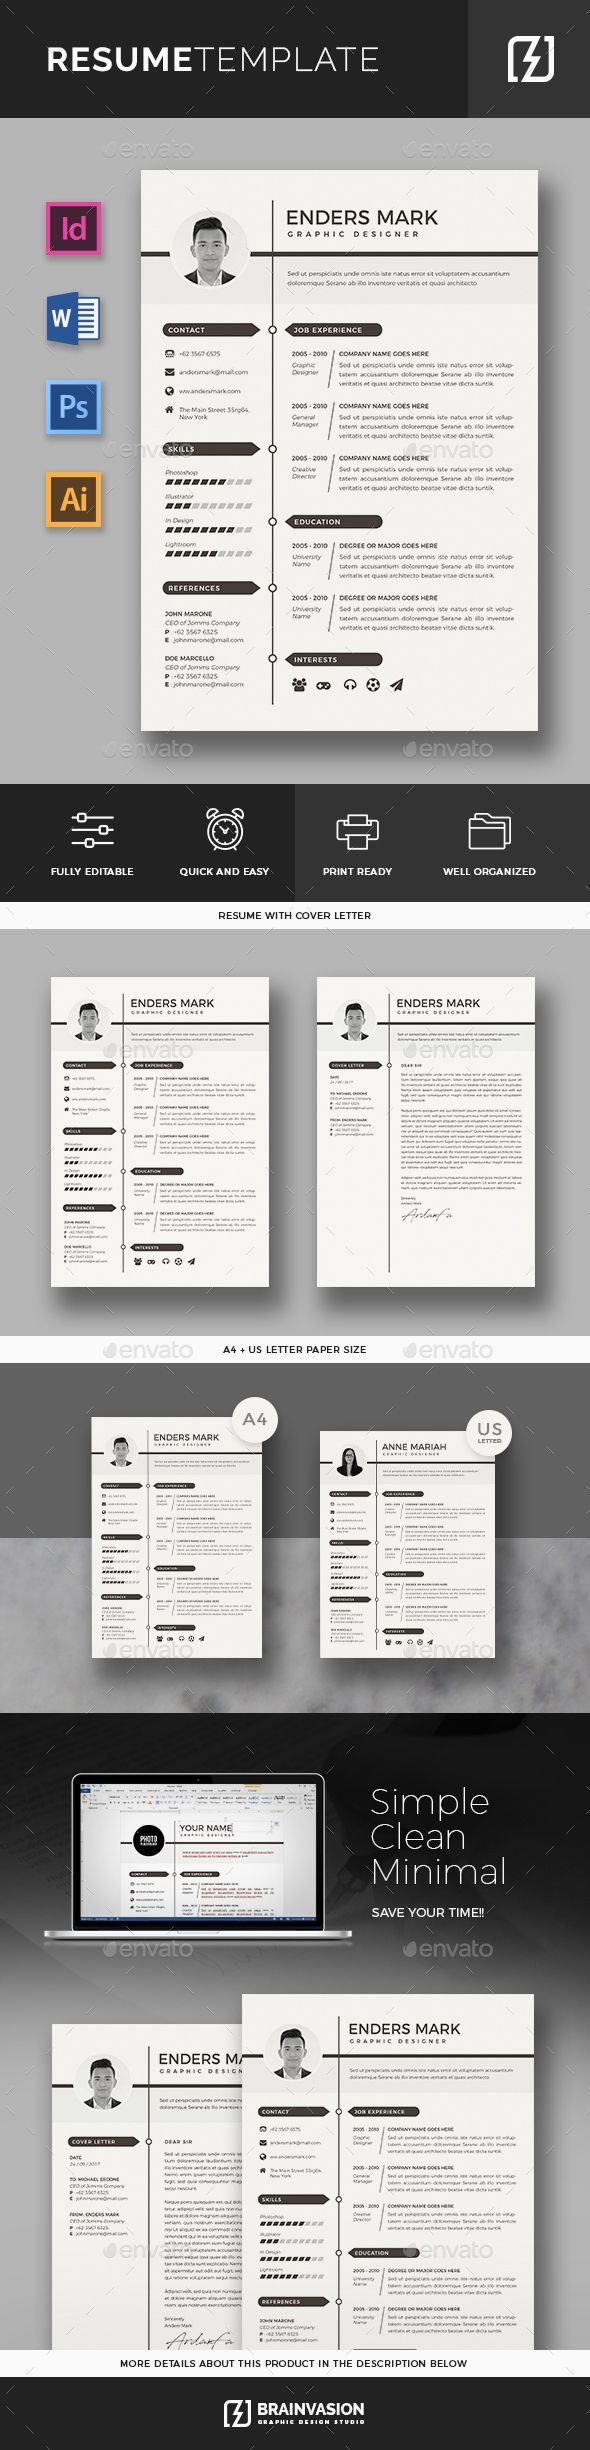 Resume Template Resumes Stationery Download here